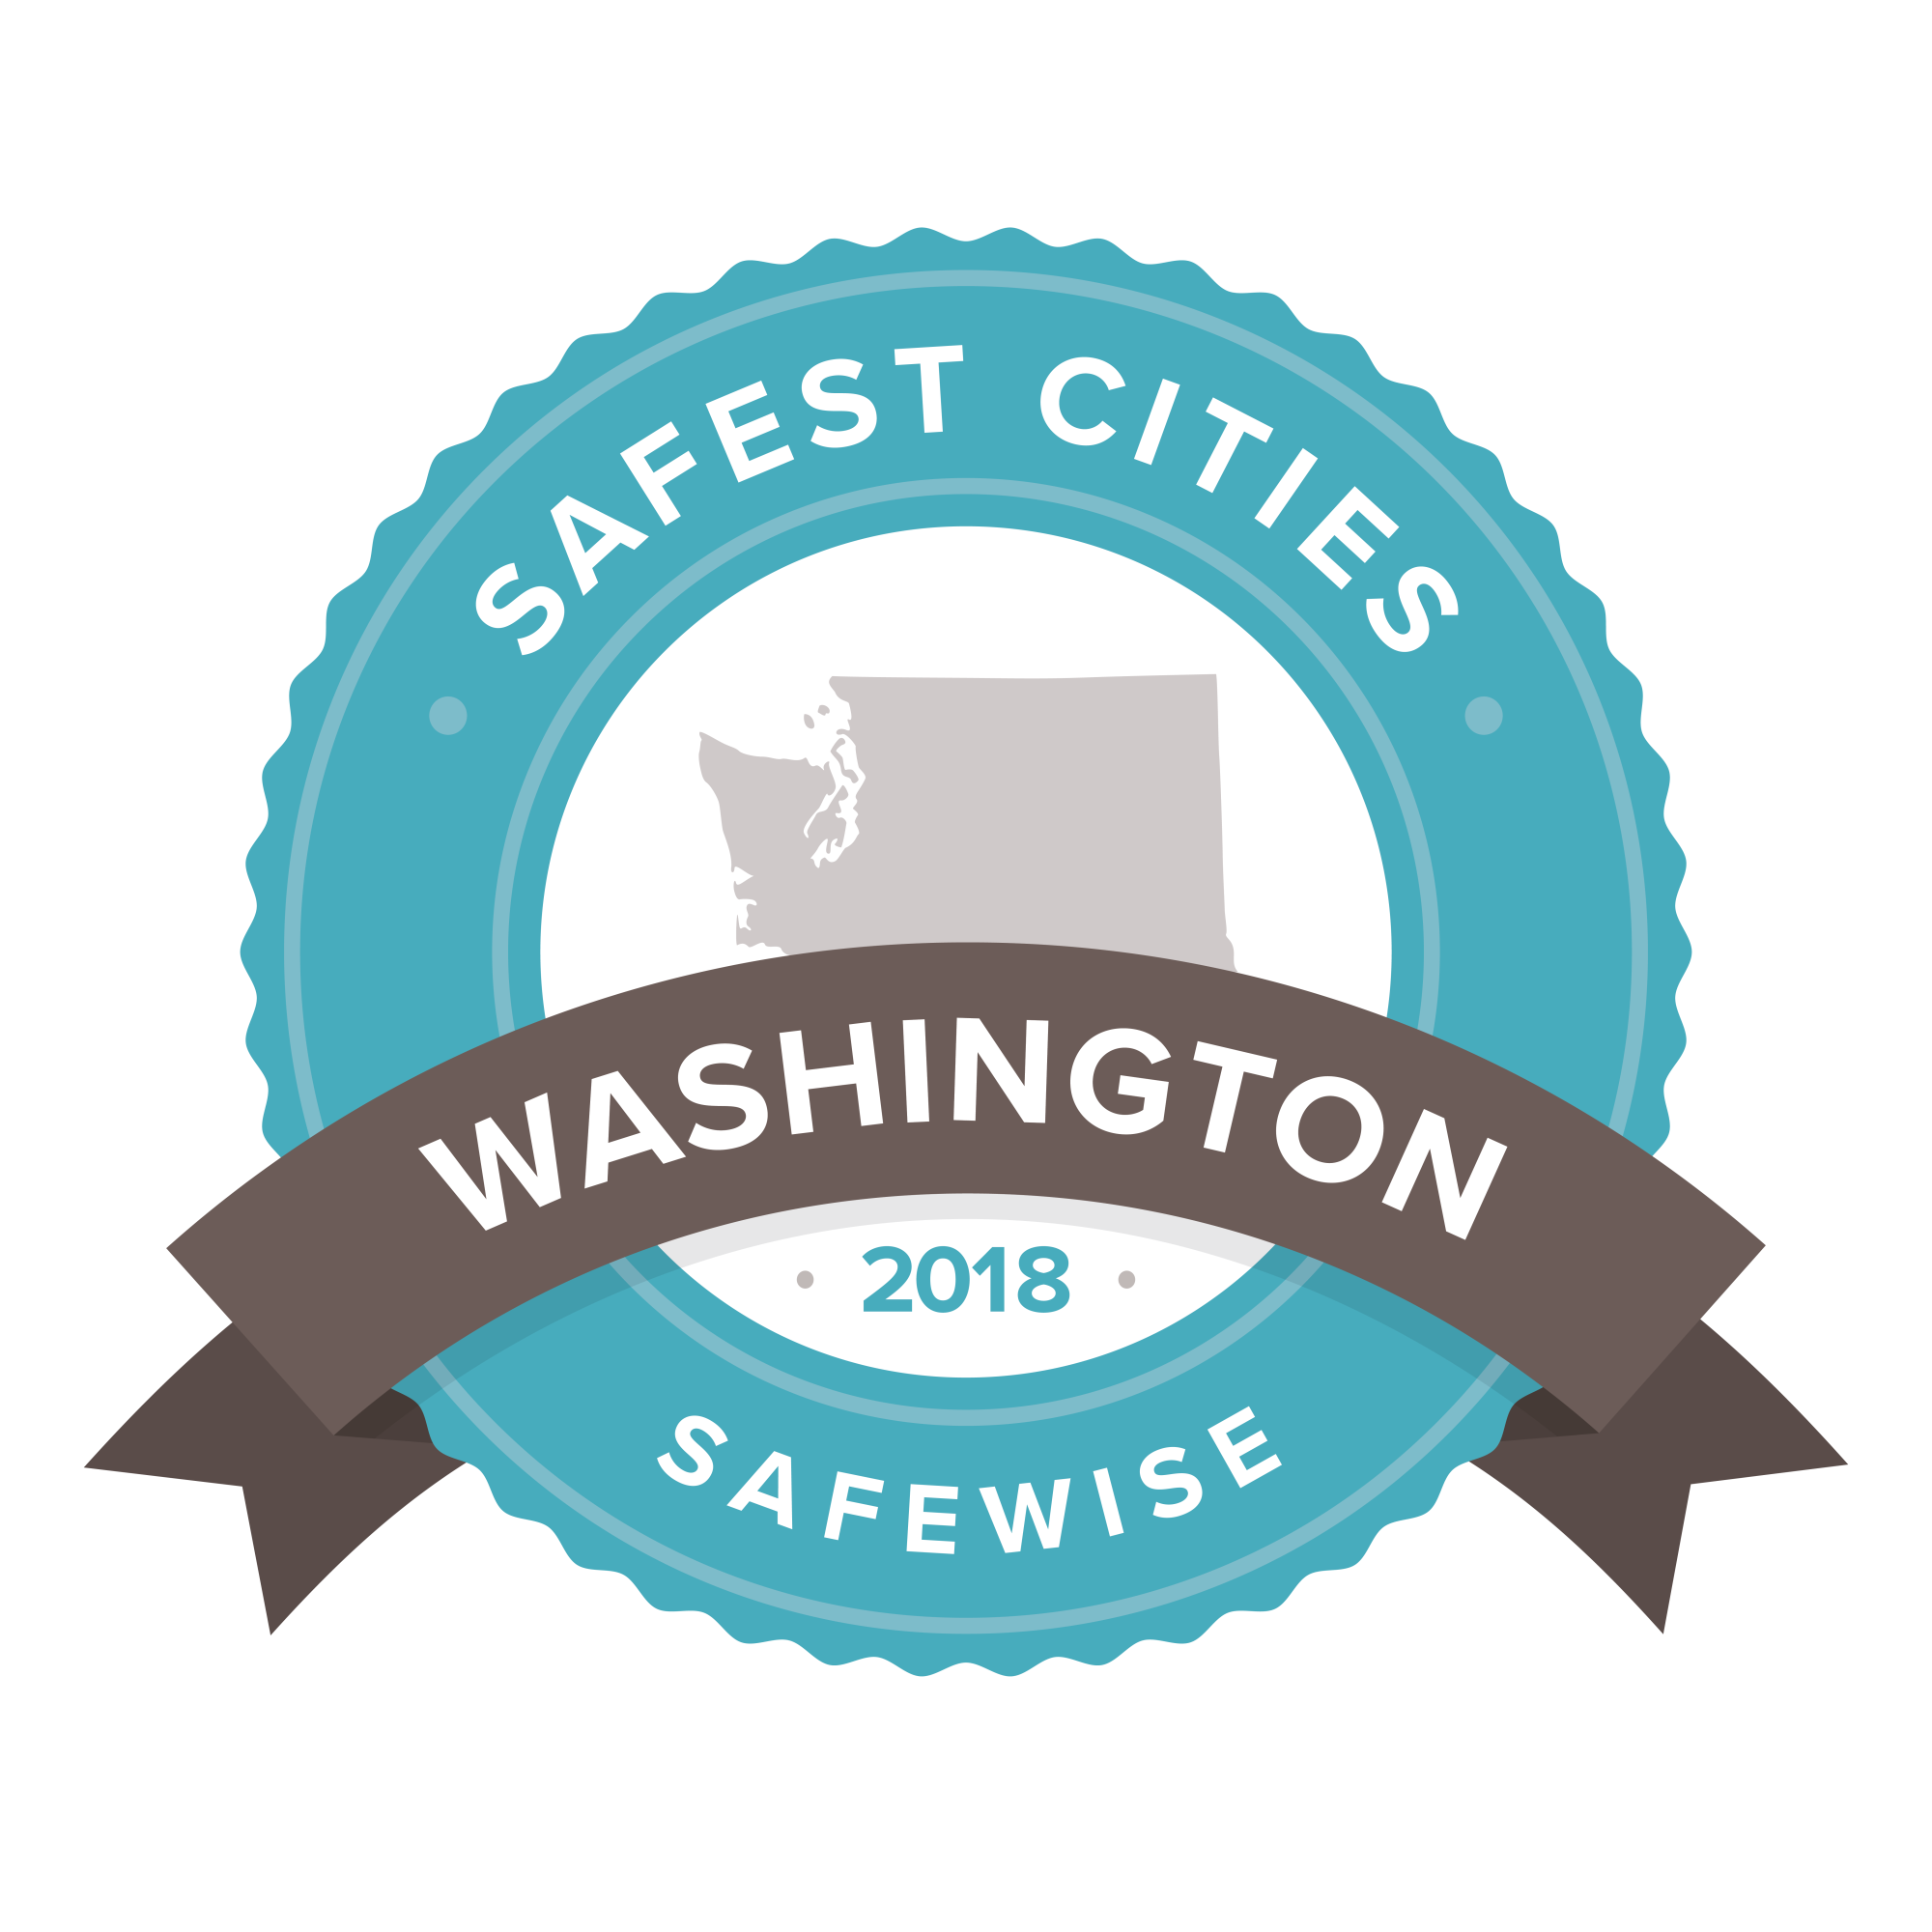 SW-SafestCitiesBadge2018_Washington